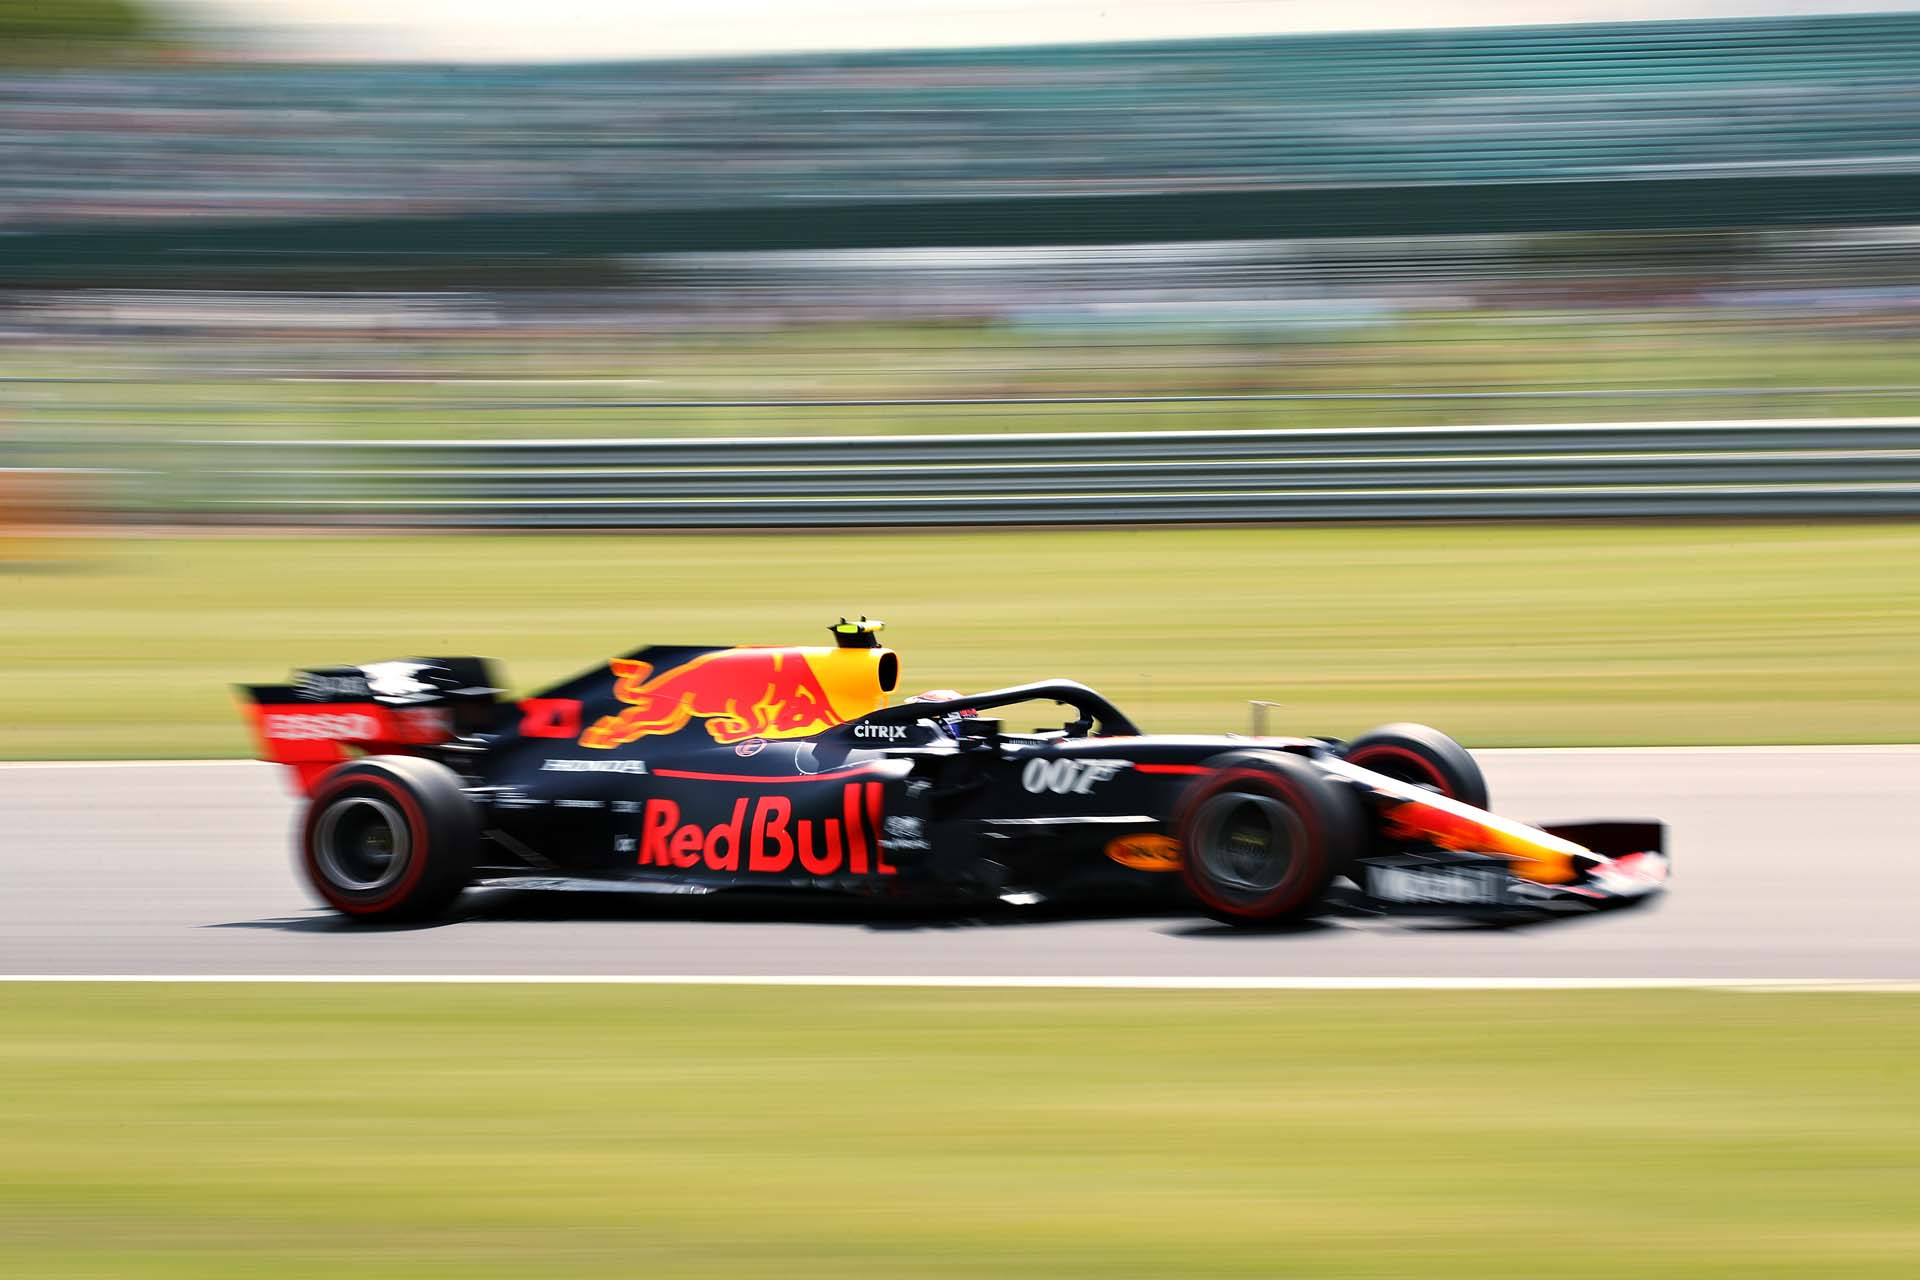 NORTHAMPTON, ENGLAND - JULY 12: Pierre Gasly of France driving the (10) Aston Martin Red Bull Racing RB15 on track during practice for the F1 Grand Prix of Great Britain at Silverstone on July 12, 2019 in Northampton, England. (Photo by Bryn Lennon/Getty Images) // Getty Images / Red Bull Content Pool  // AP-1ZX52P6ND2111 // Usage for editorial use only // Please go to www.redbullcontentpool.com for further information. //